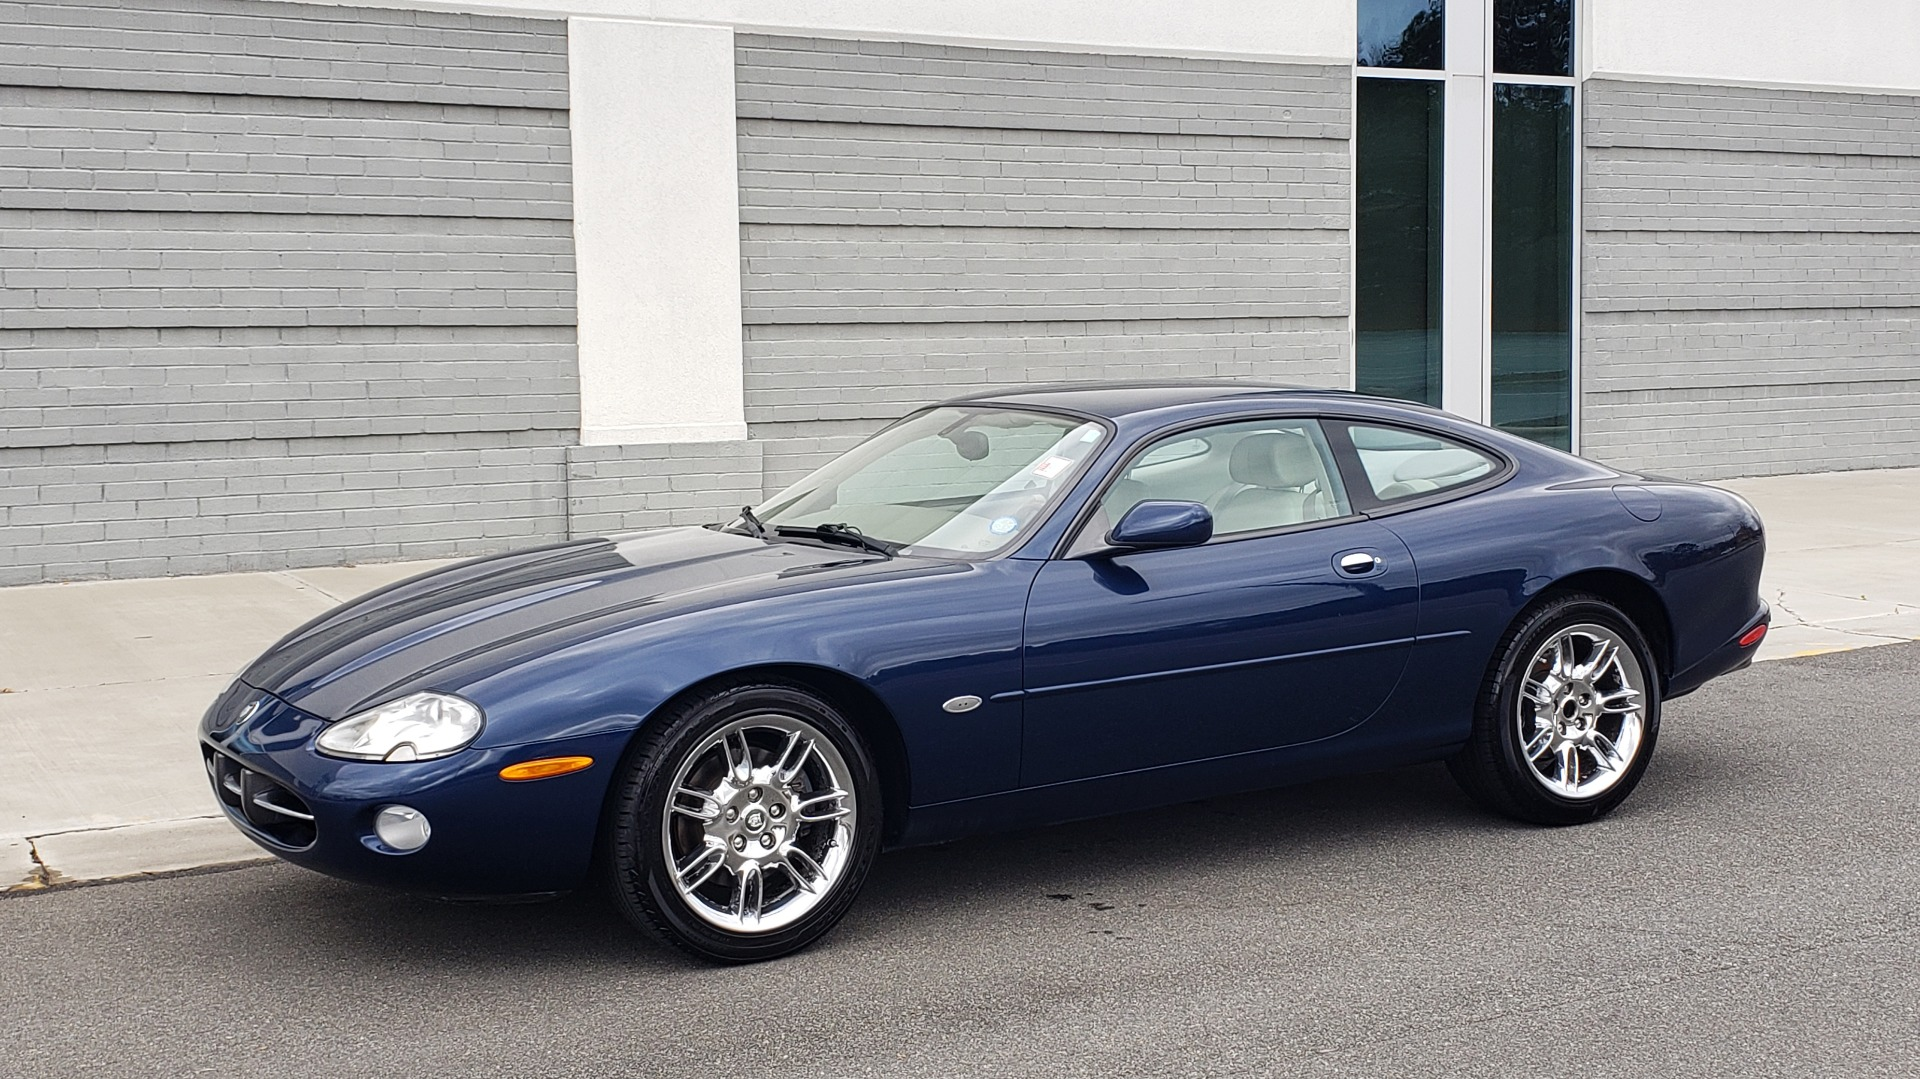 Used 2002 Jaguar XK8 COUPE / 4.0L V8 / 5-SPD AUTO / ALPINE SOUND / 18IN CHROME WHEELS for sale $16,450 at Formula Imports in Charlotte NC 28227 4